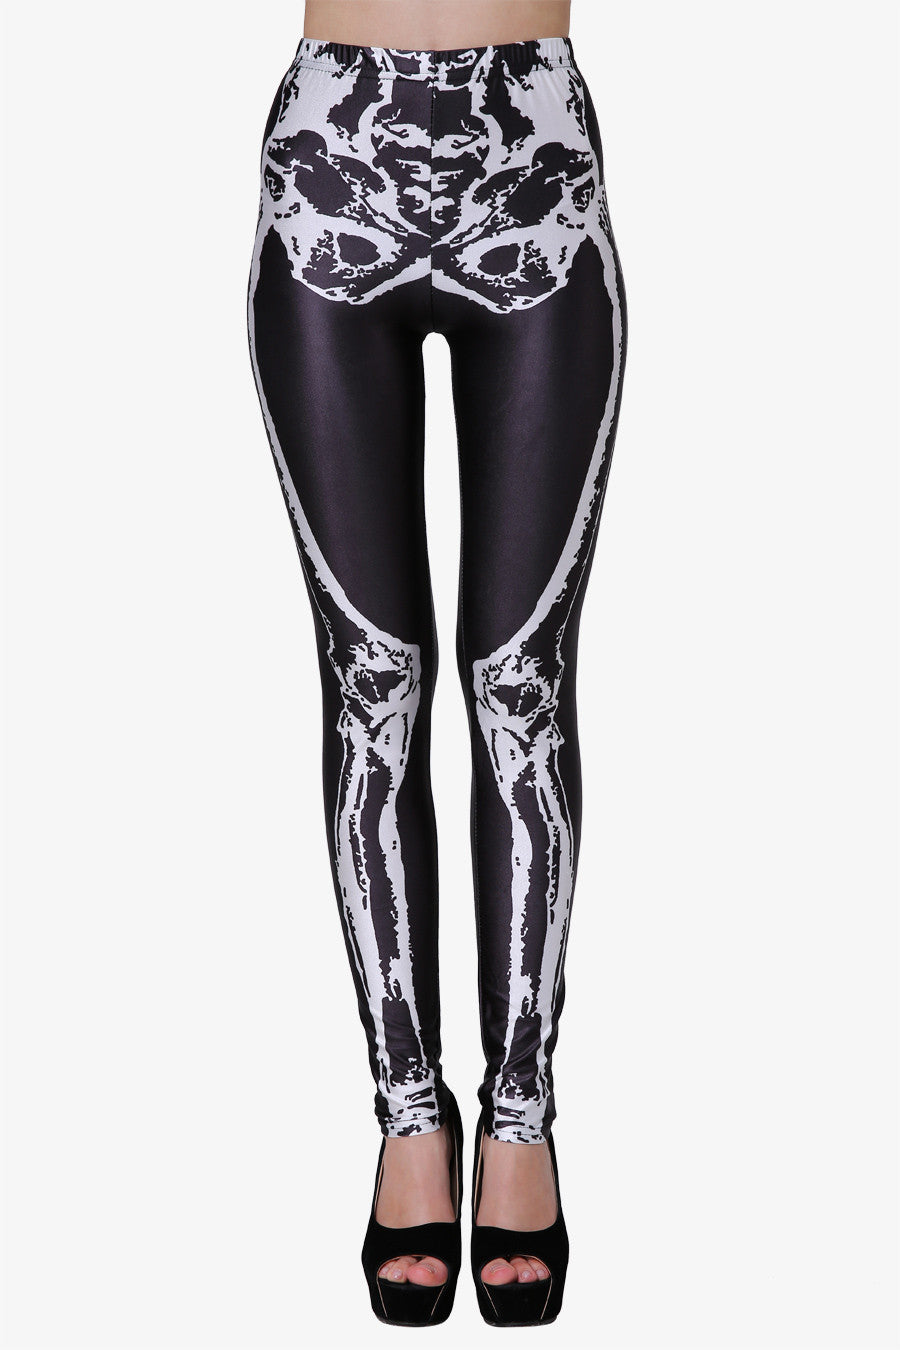 Bone Collector Leggings